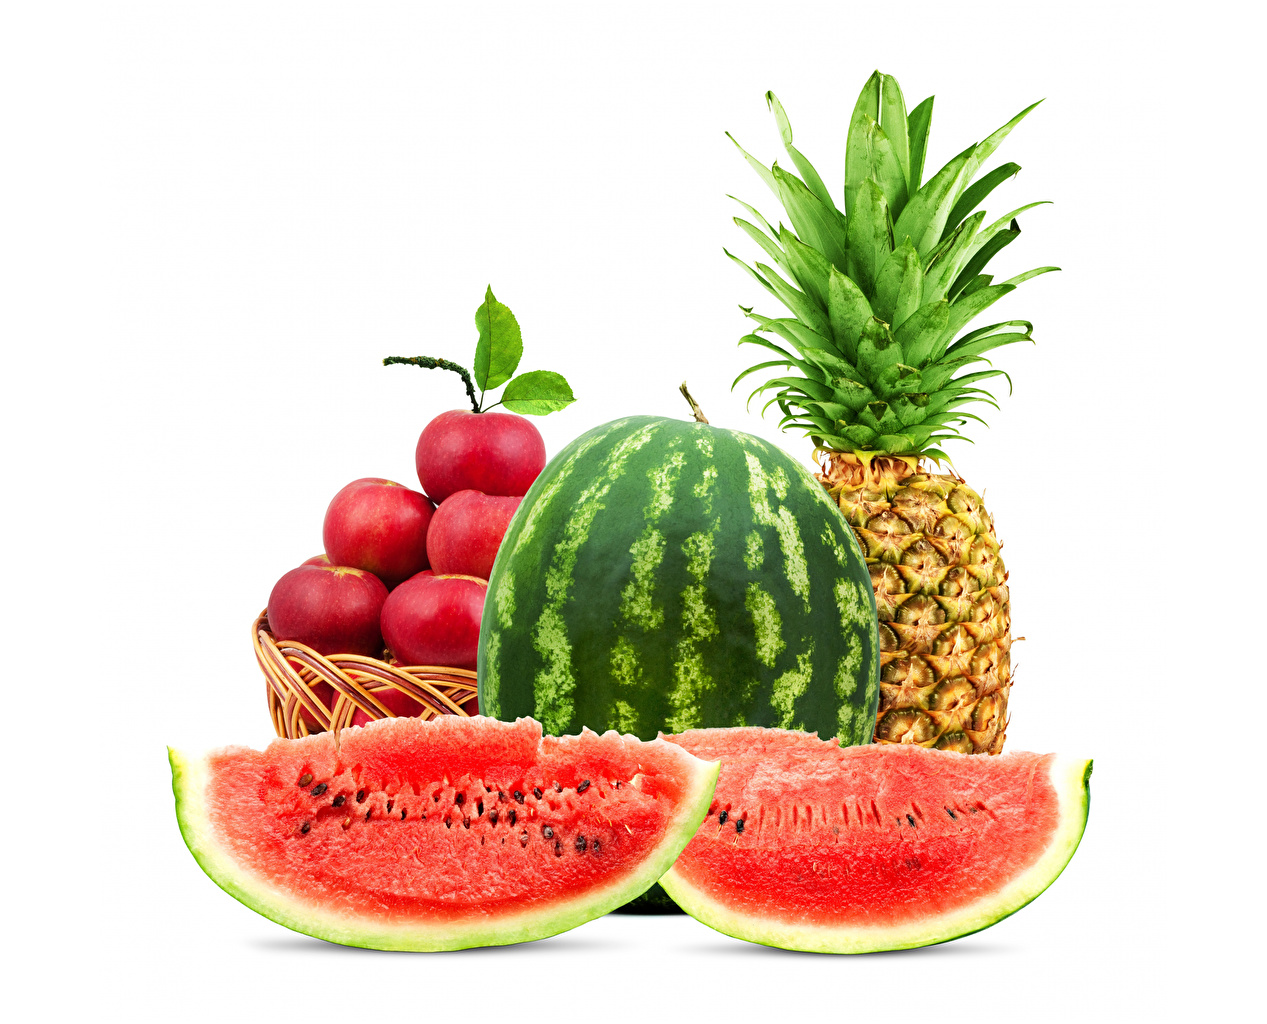 Image pieces Apples Pineapples Watermelons Food White background Piece